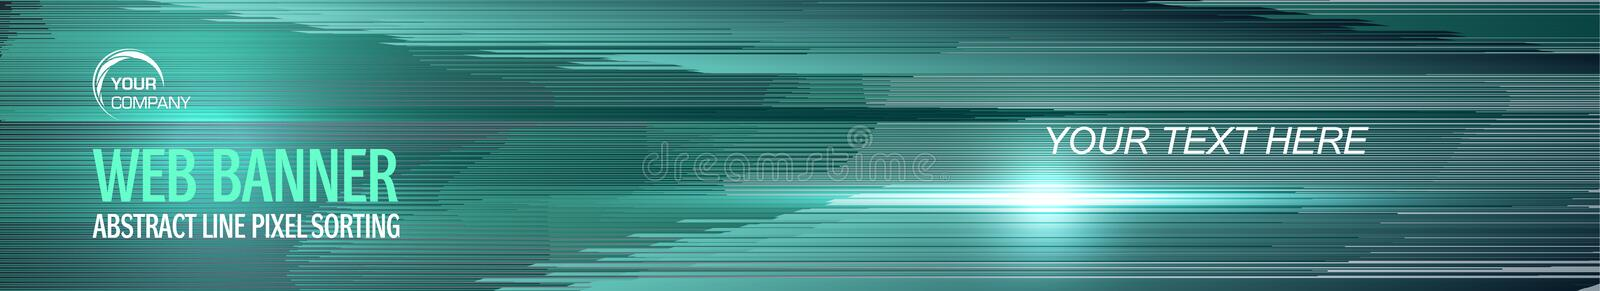 Web banner geometry line design. Pixel sorting style in cyan color.  vector illustration